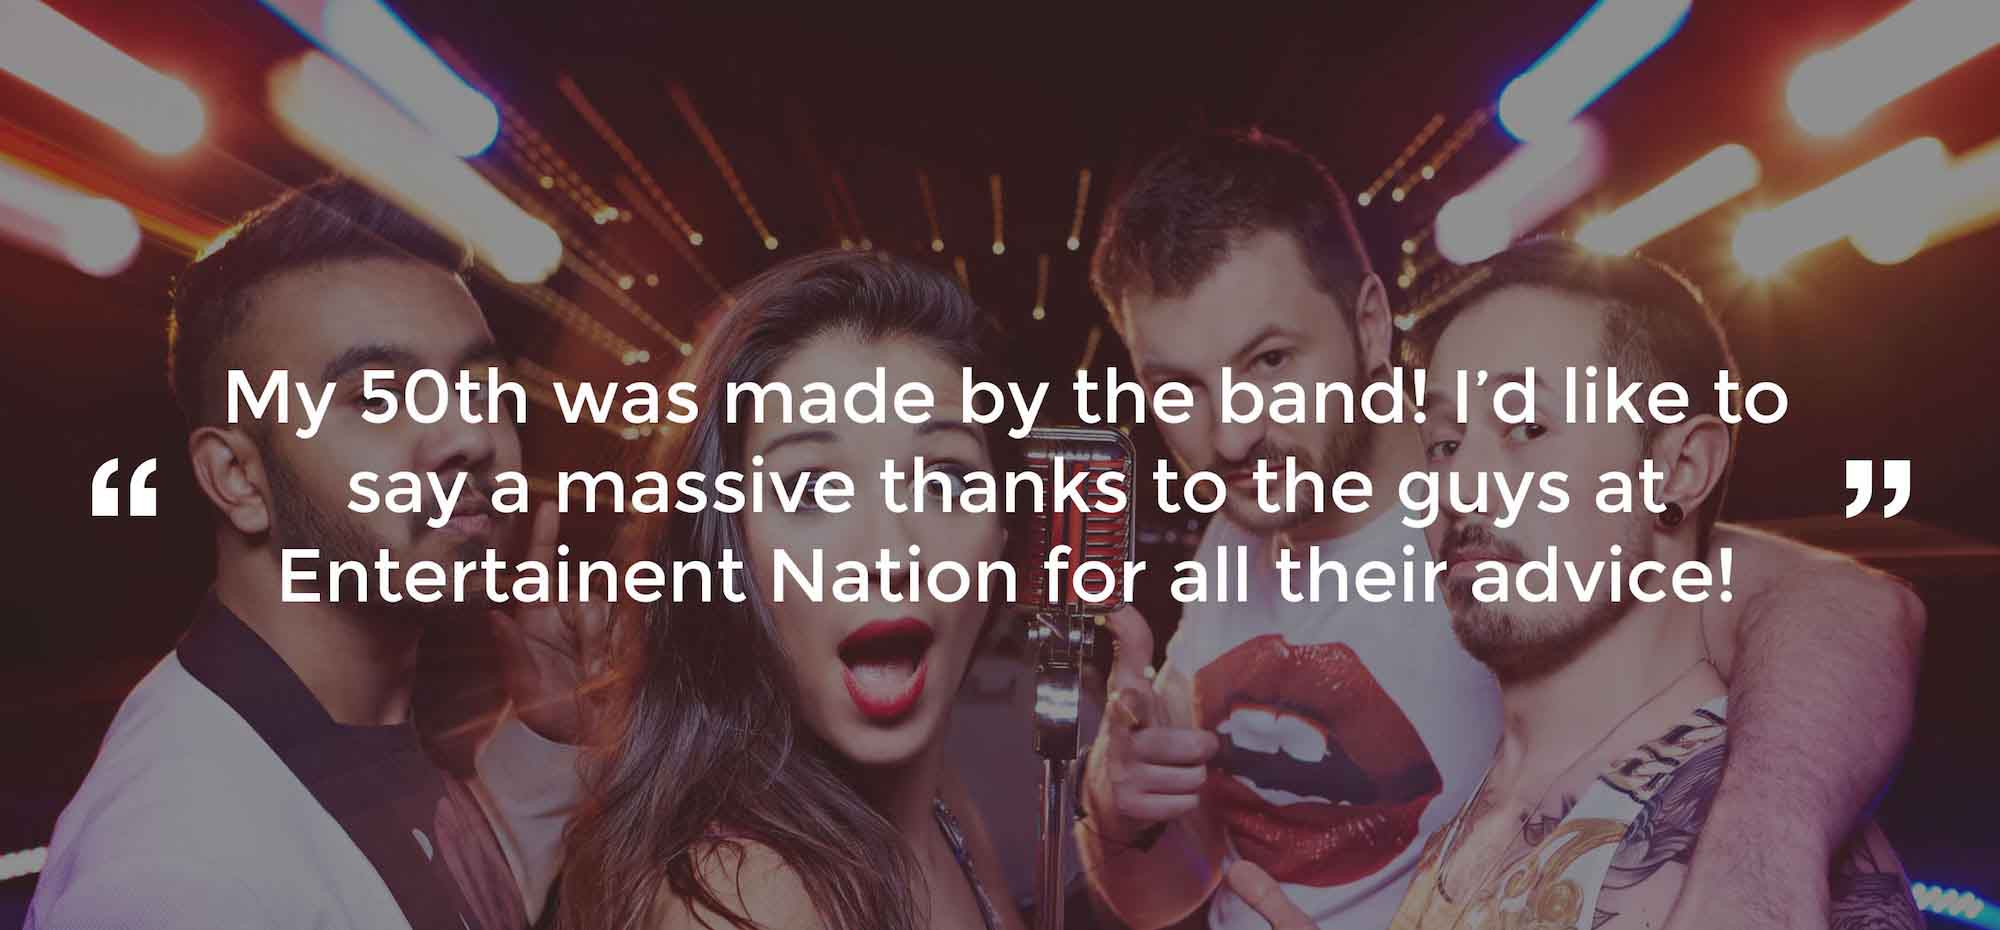 Client Review of a Party Band Greater London